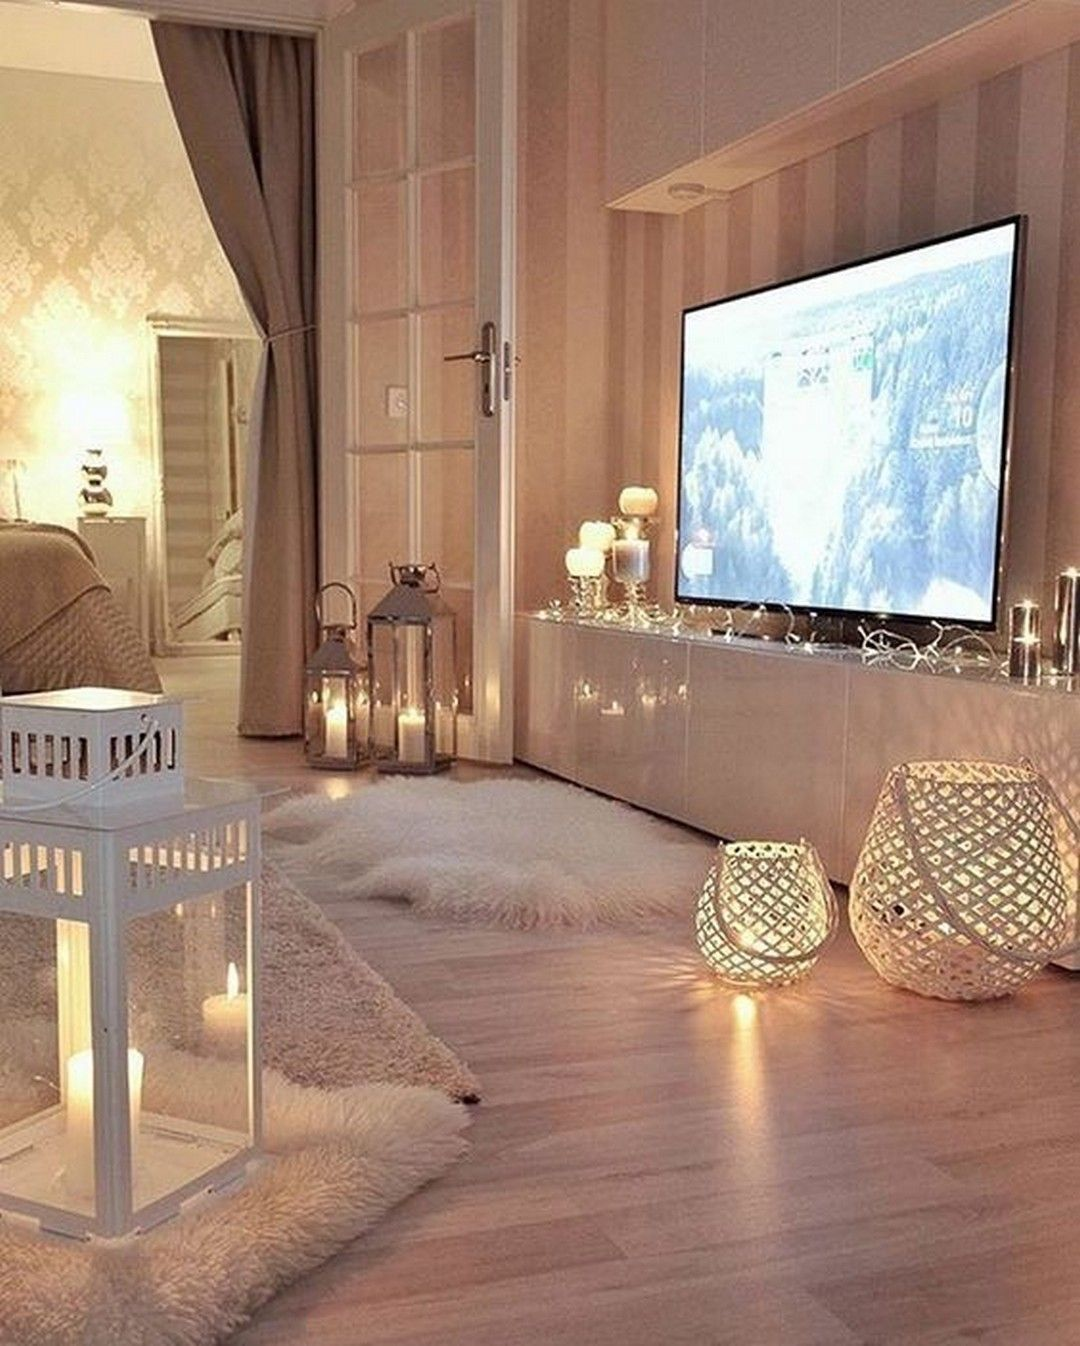 Awesome 99 Elegant Cozy Bedroom Ideas With Small Spaces  Http://www.99architecture.com/2017/03/07/99 Elegant Cozy Bedroom Ideas Small  Spaces/